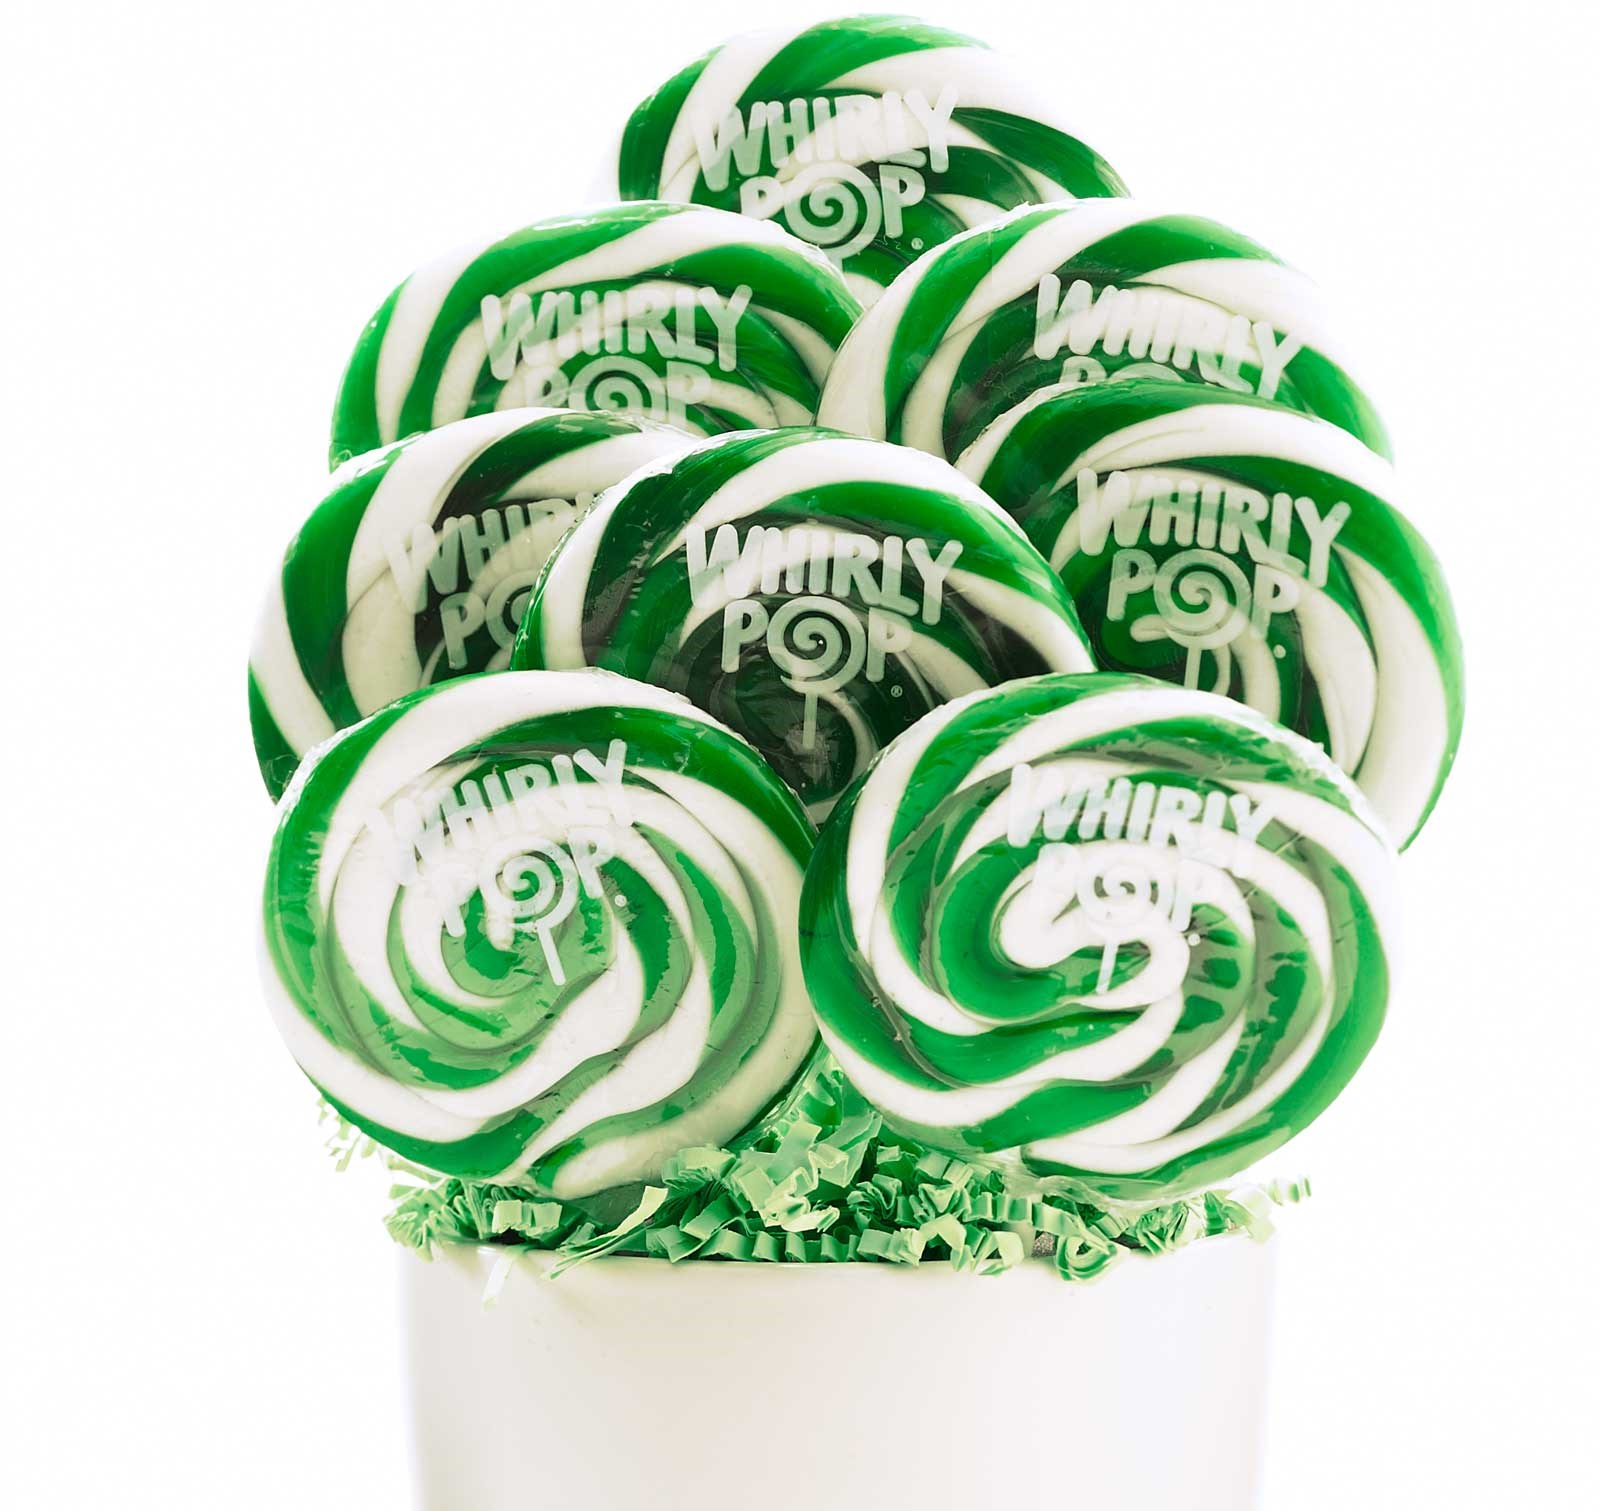 Image of Green and White Whirly Pops